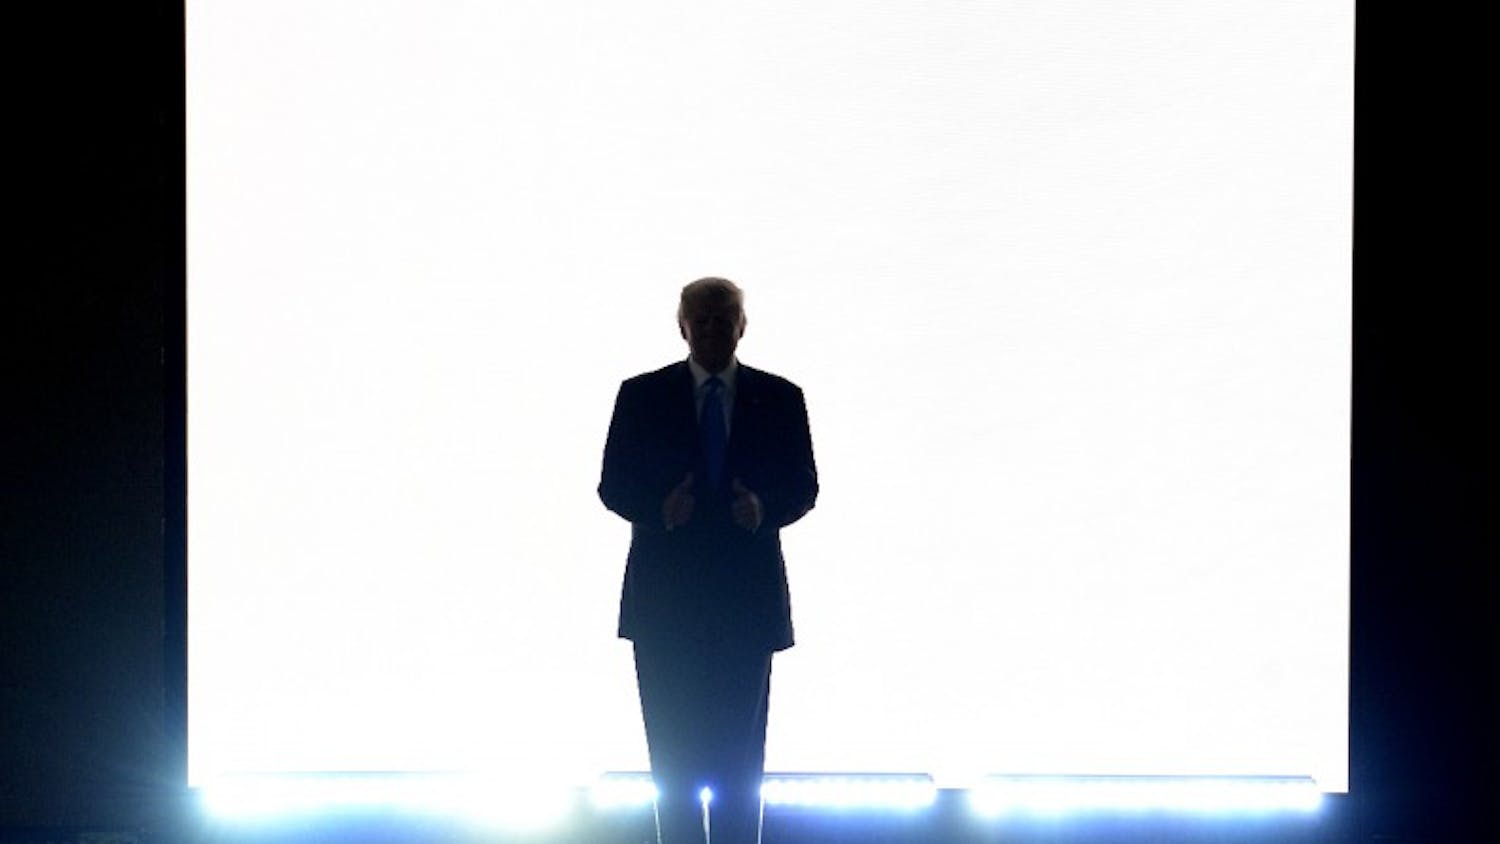 Republican candidate Donald Trump introduces his wife Melania Trump on the first day of the Republican National Convention in Cleveland on Monday, July 18, 2016. (Olivier Douliery/Abaca Press/TNS)